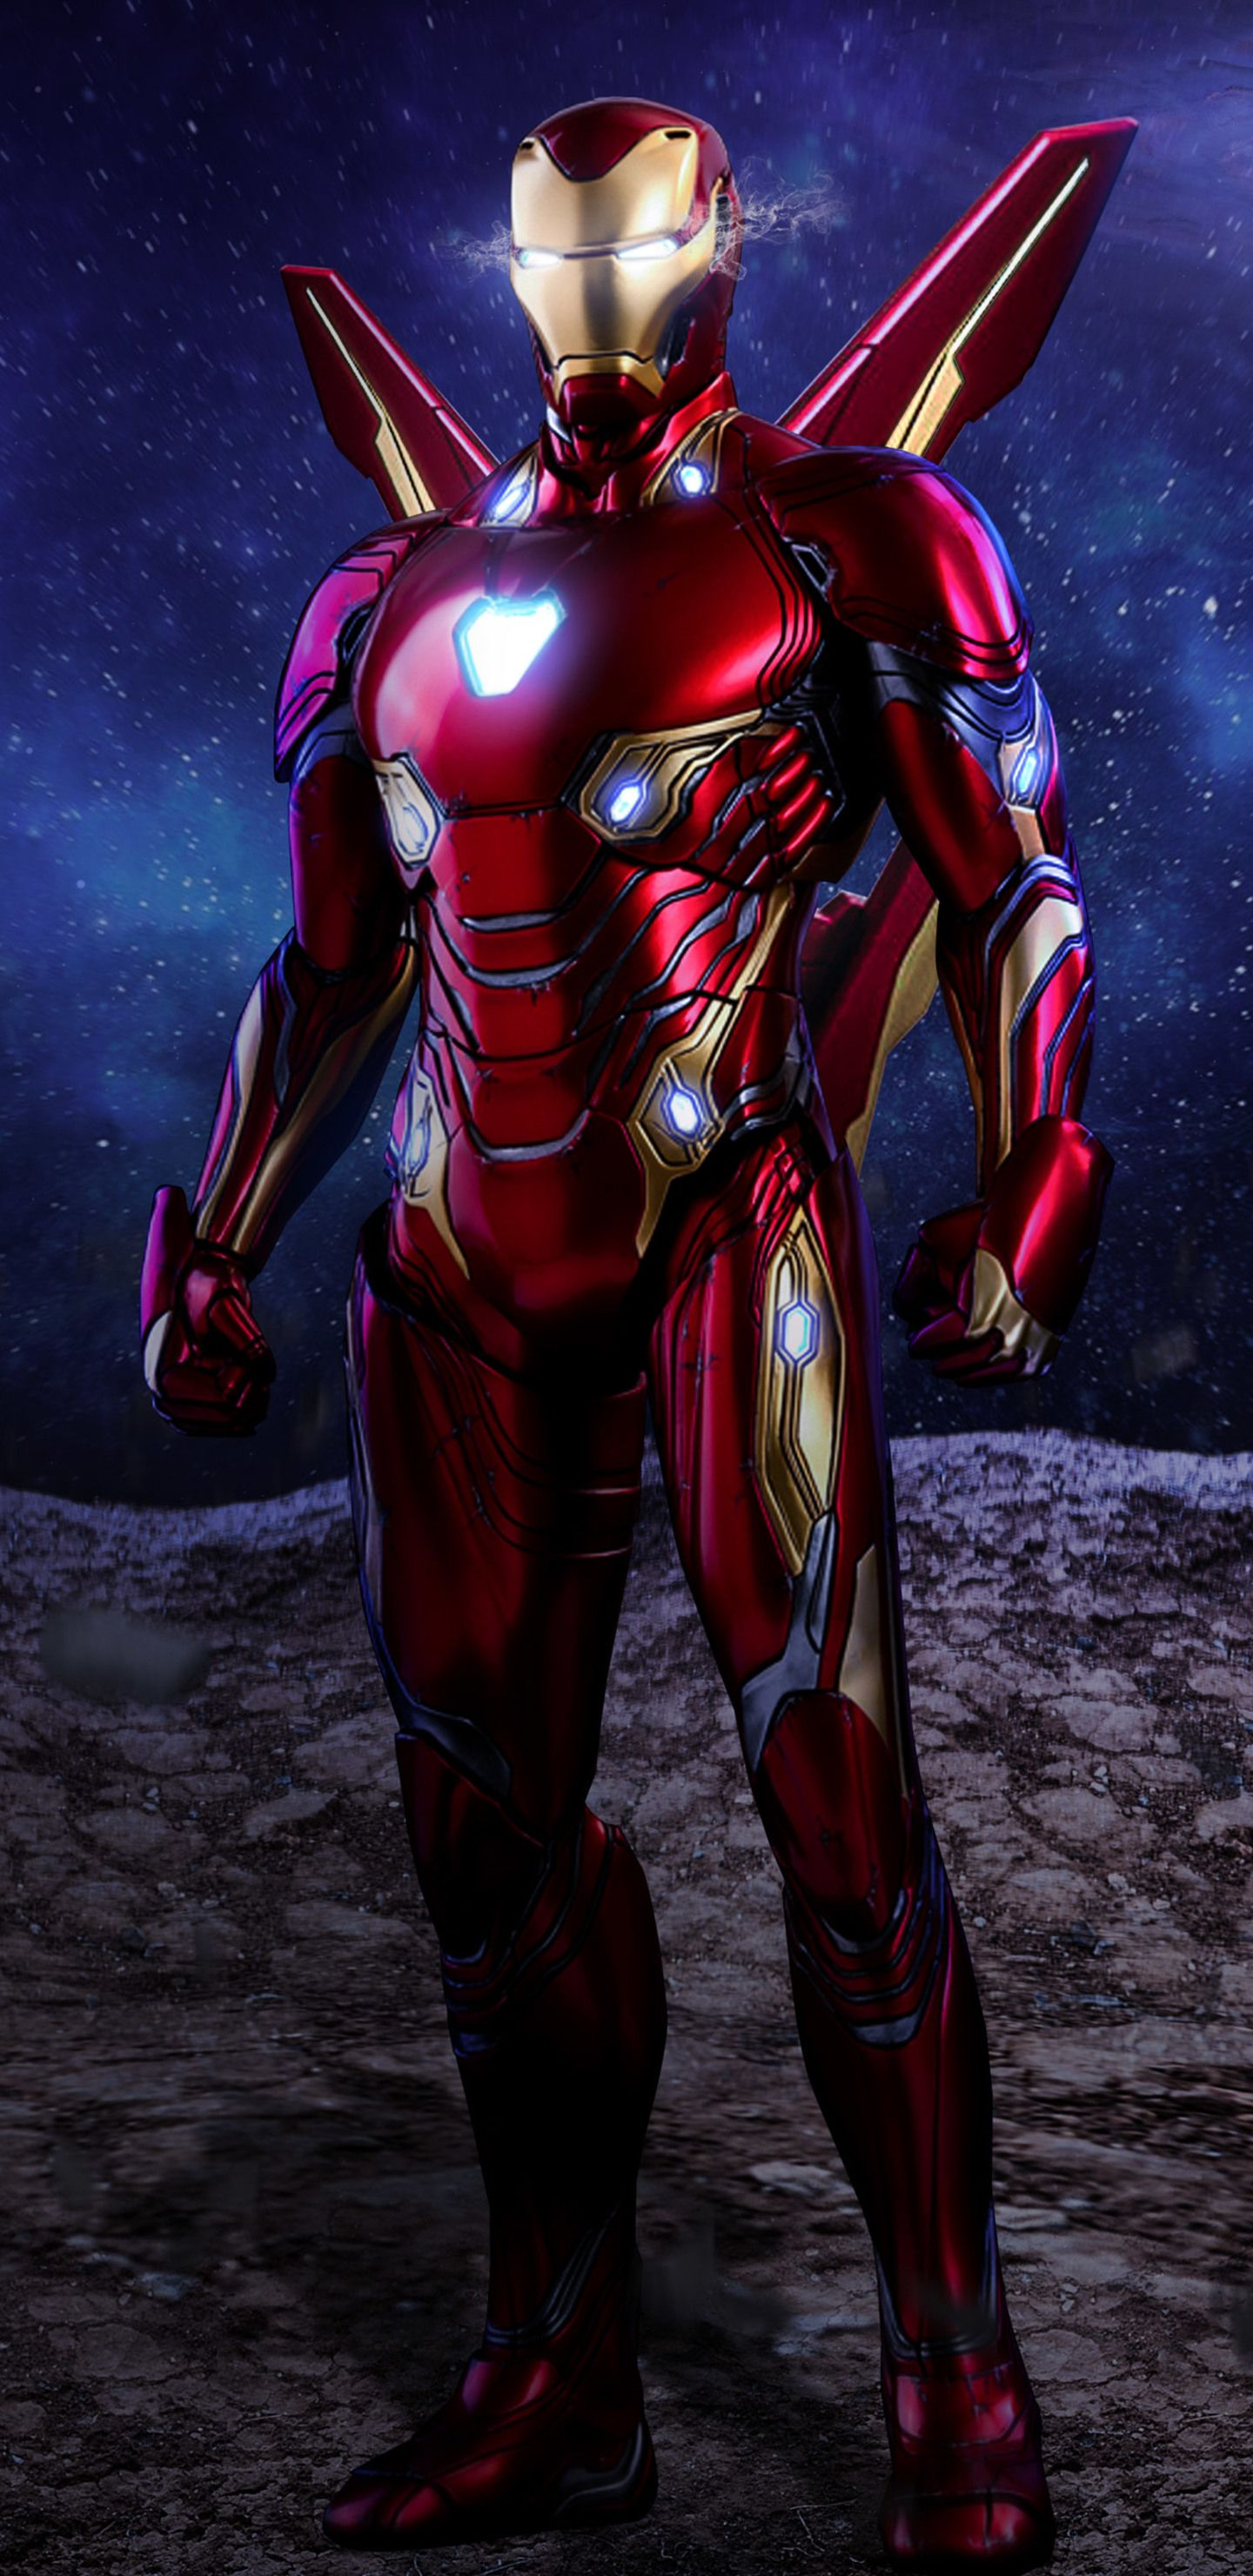 1440x2960 Iron Man Avengers Infinity War Suit Artwork Samsung Galaxy Note 9 8 S9 S8 S8 Qhd Hd 4k Wallpapers Iron Man Art Iron Man Avengers Iron Man Wallpaper